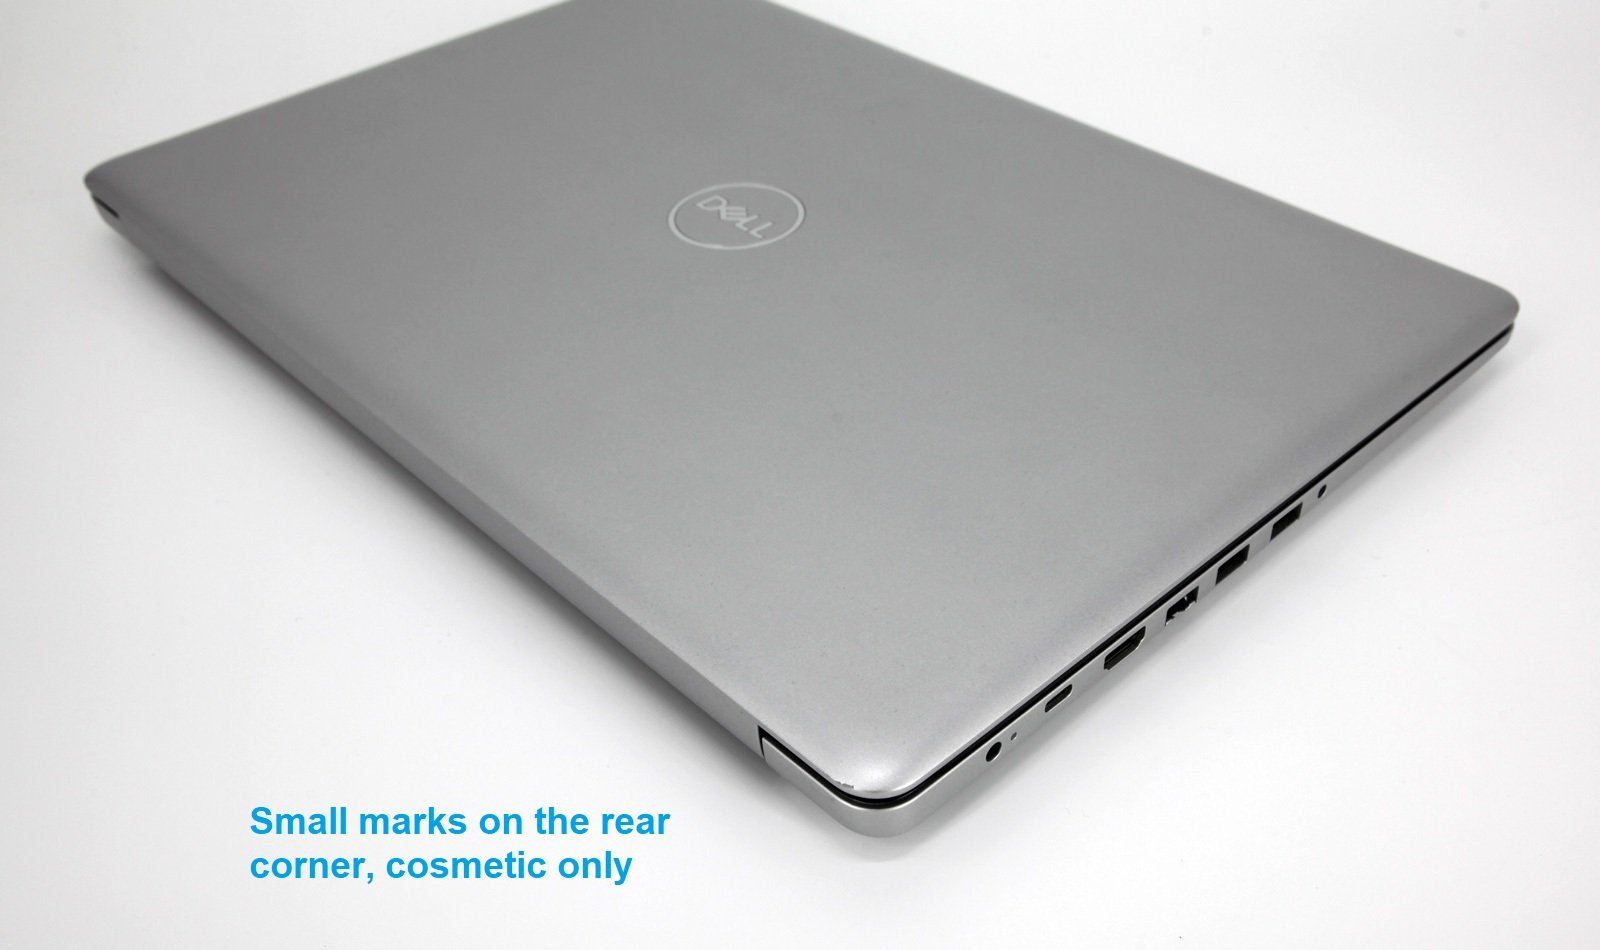 Dell Inspiron 17 3793 Laptop; i5 10th Gen, 8GB RAM, SSD&HDD, NVIDIA, Warranty - CruiseTech